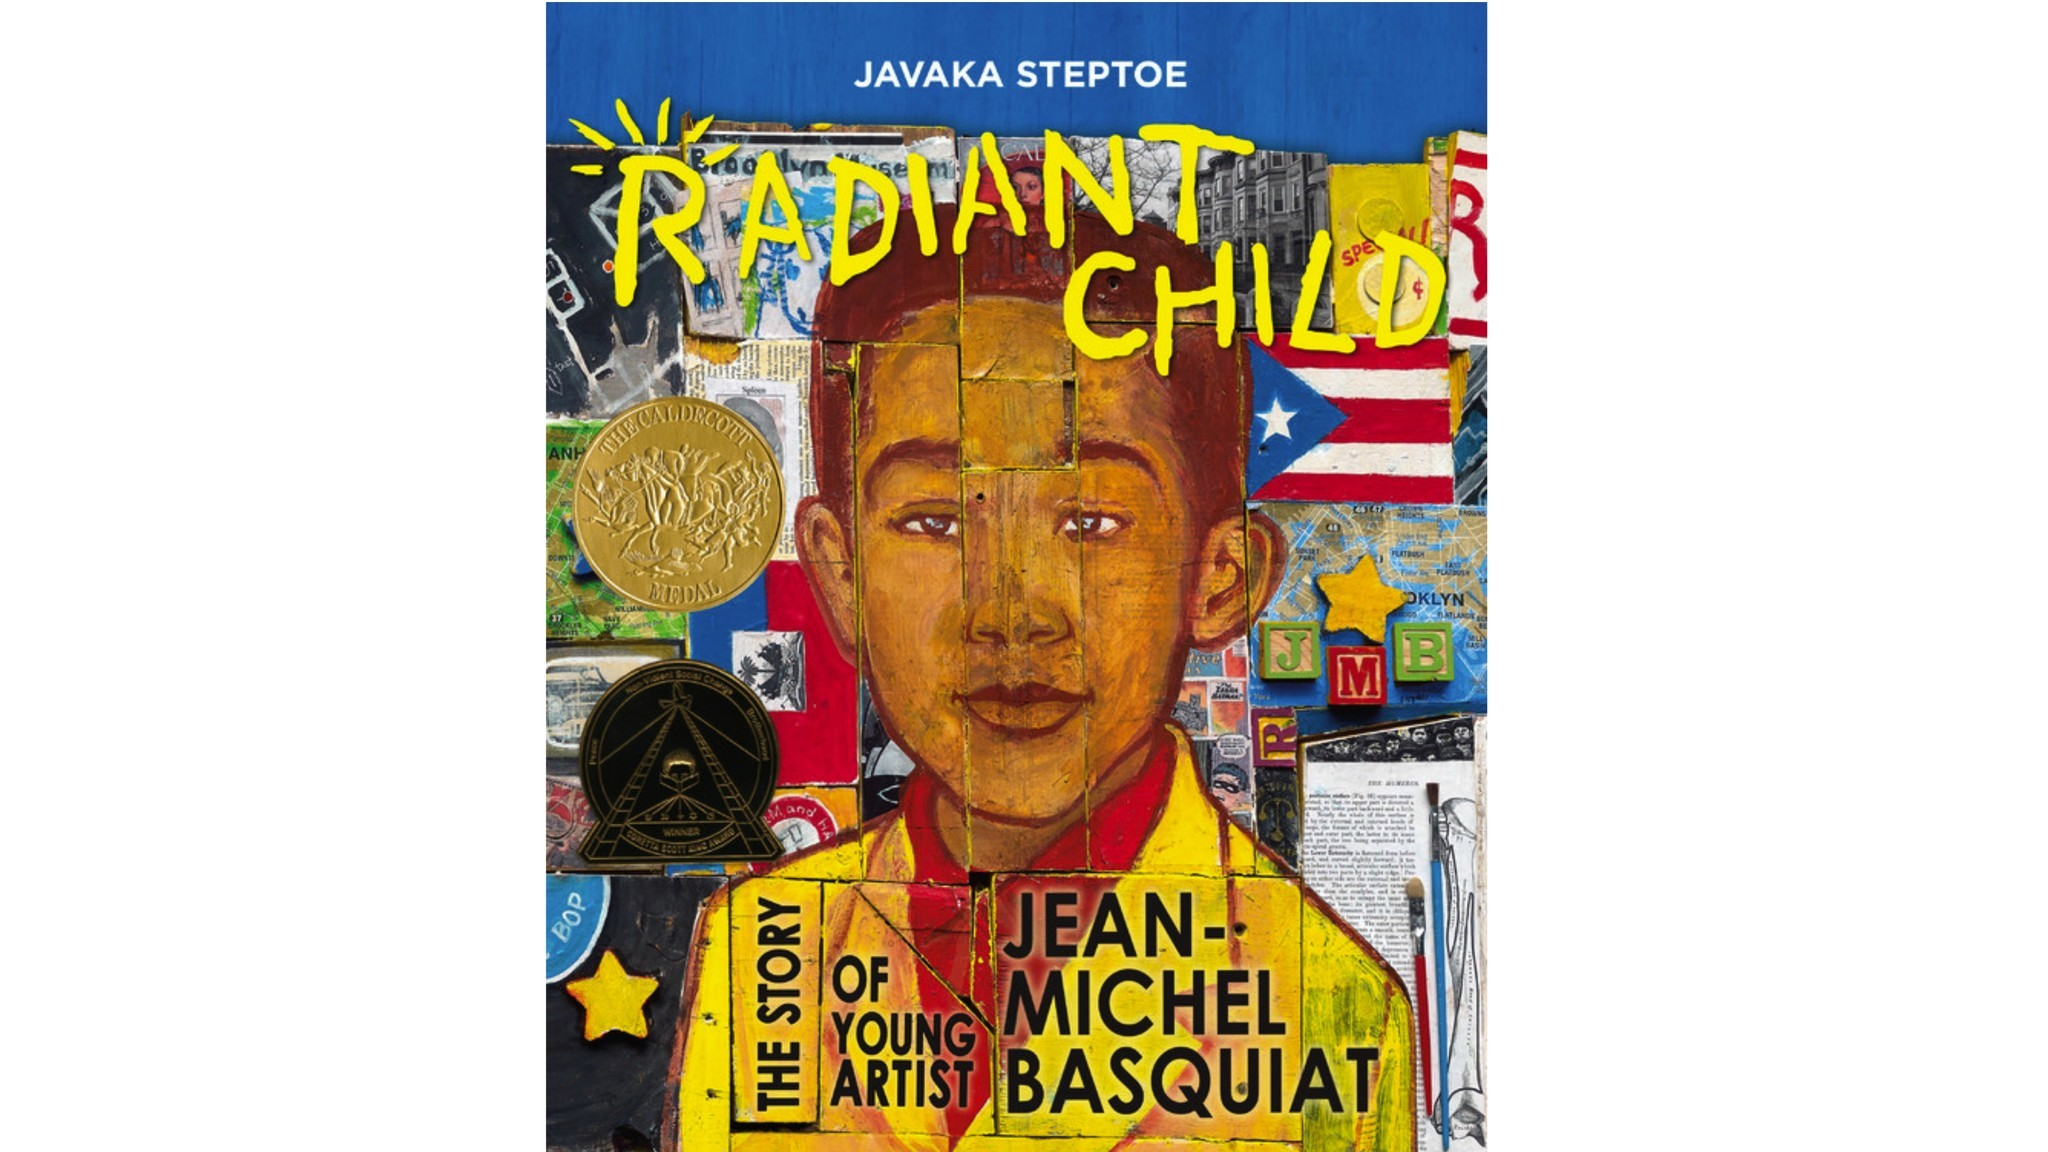 """Radiant Child: The Story of Young Artist Jean-Michel Basquiat"" by Javaka Steptoe."